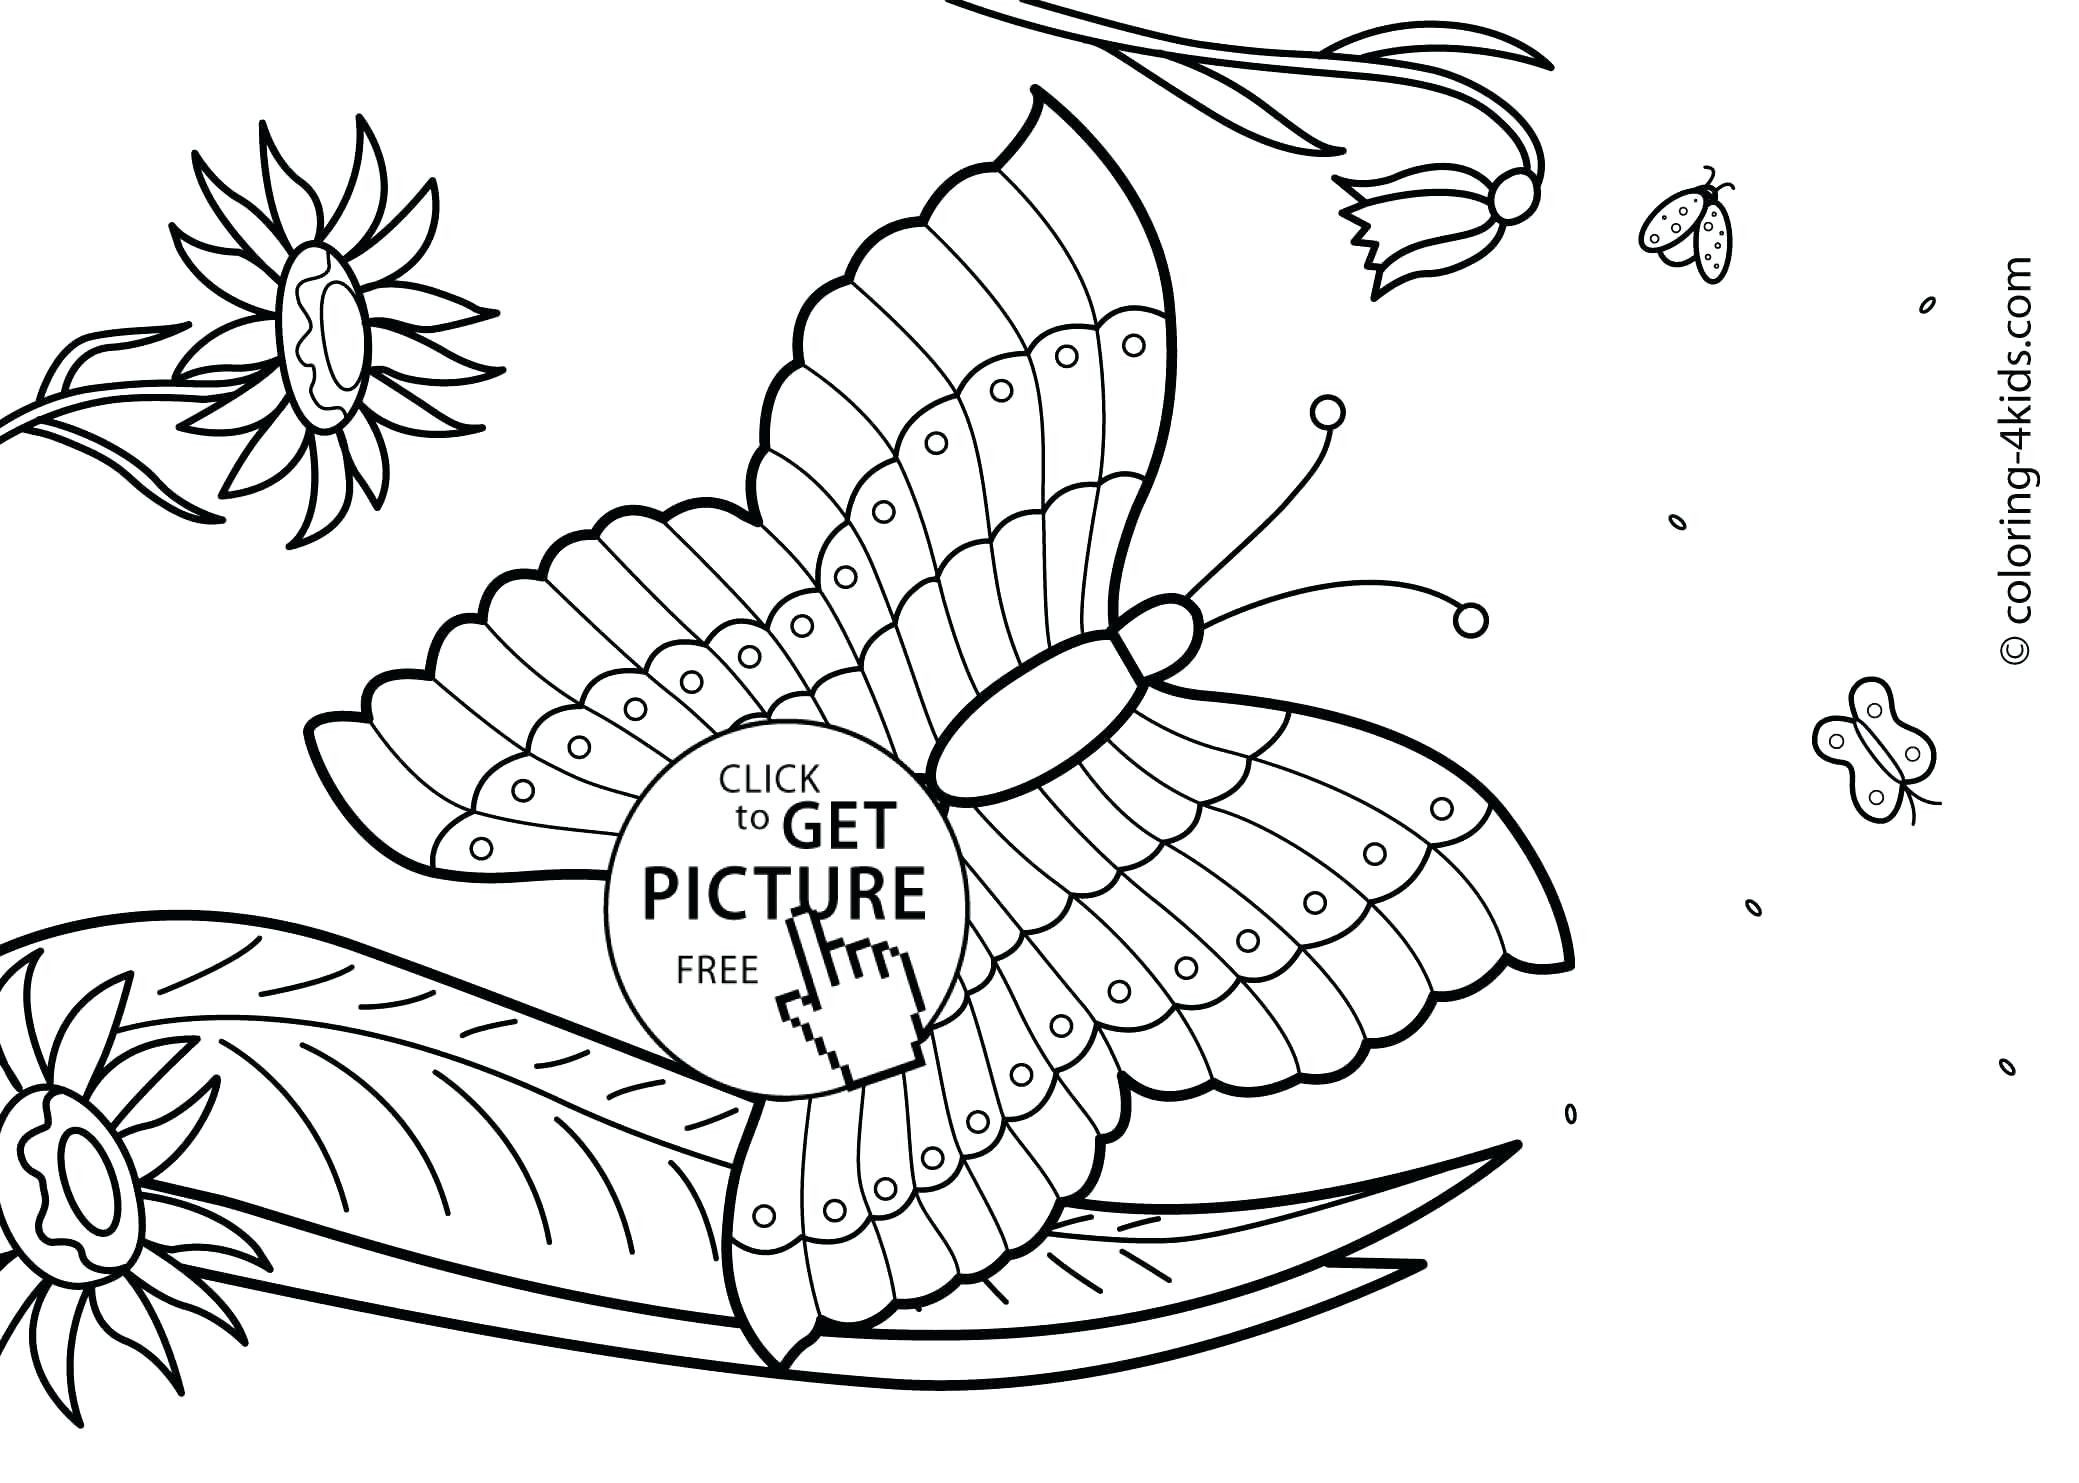 5 Worksheet Free Coloring Pages For Kids To Print Free